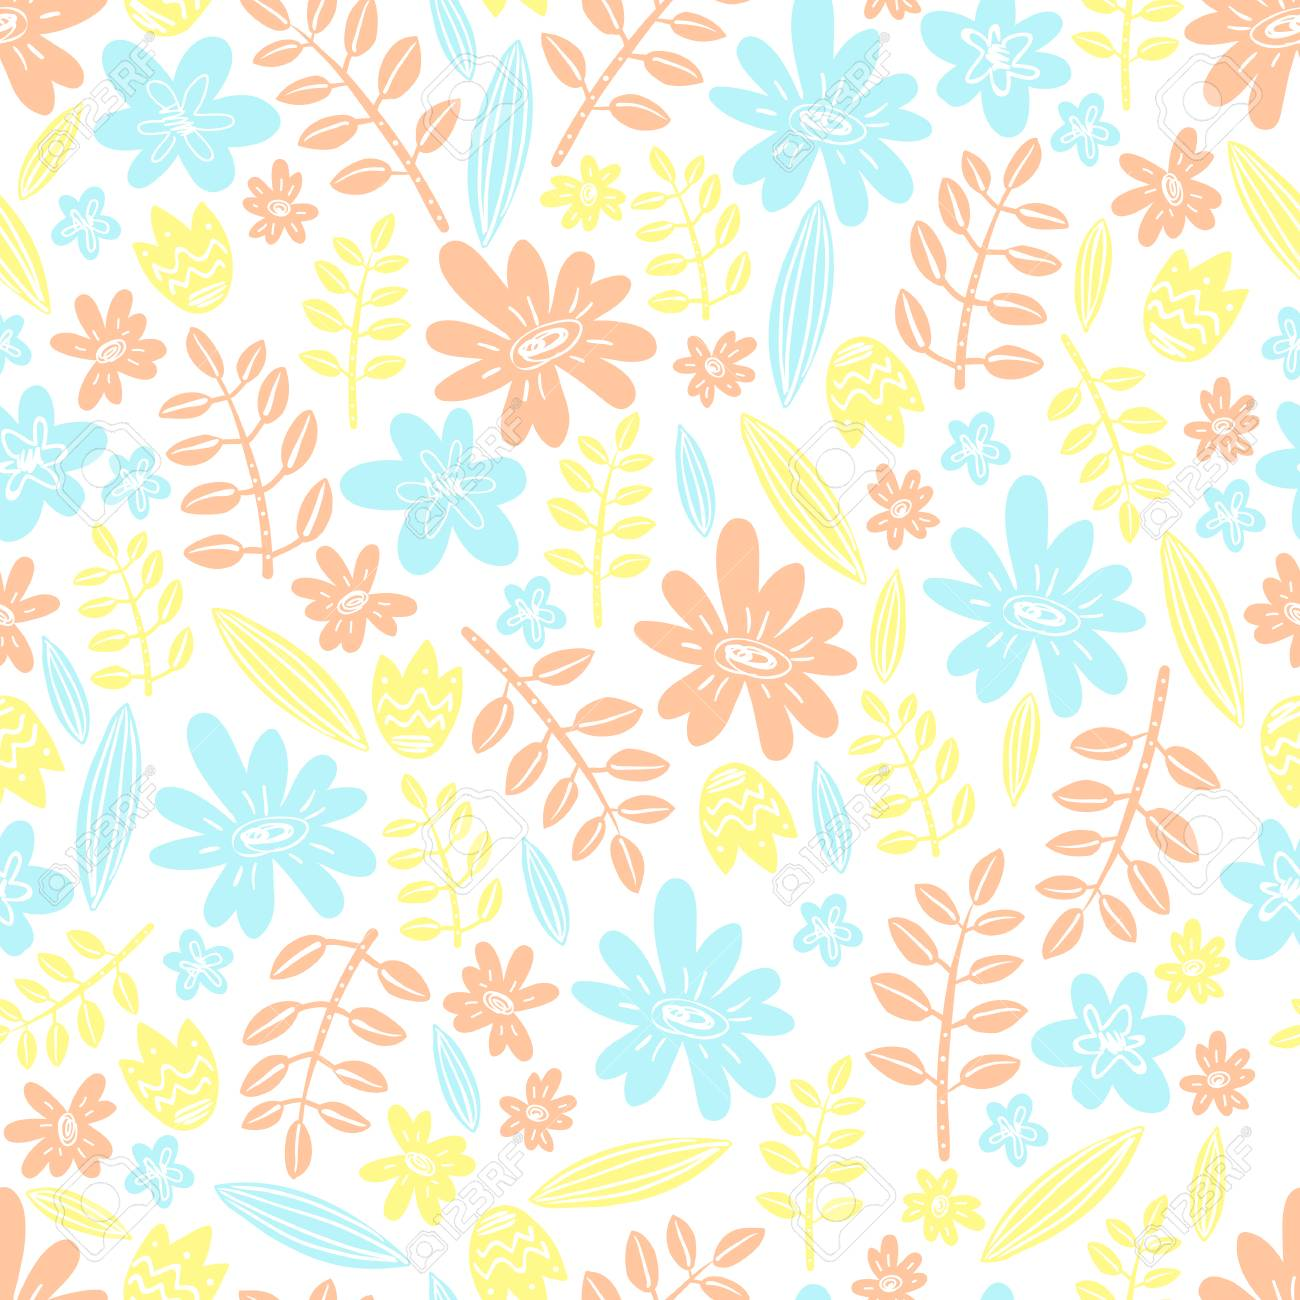 Seamless vector pattern scrapbooking background wrapping paper scrapbooking background wrapping paper flowers and leaves pastel colors mightylinksfo